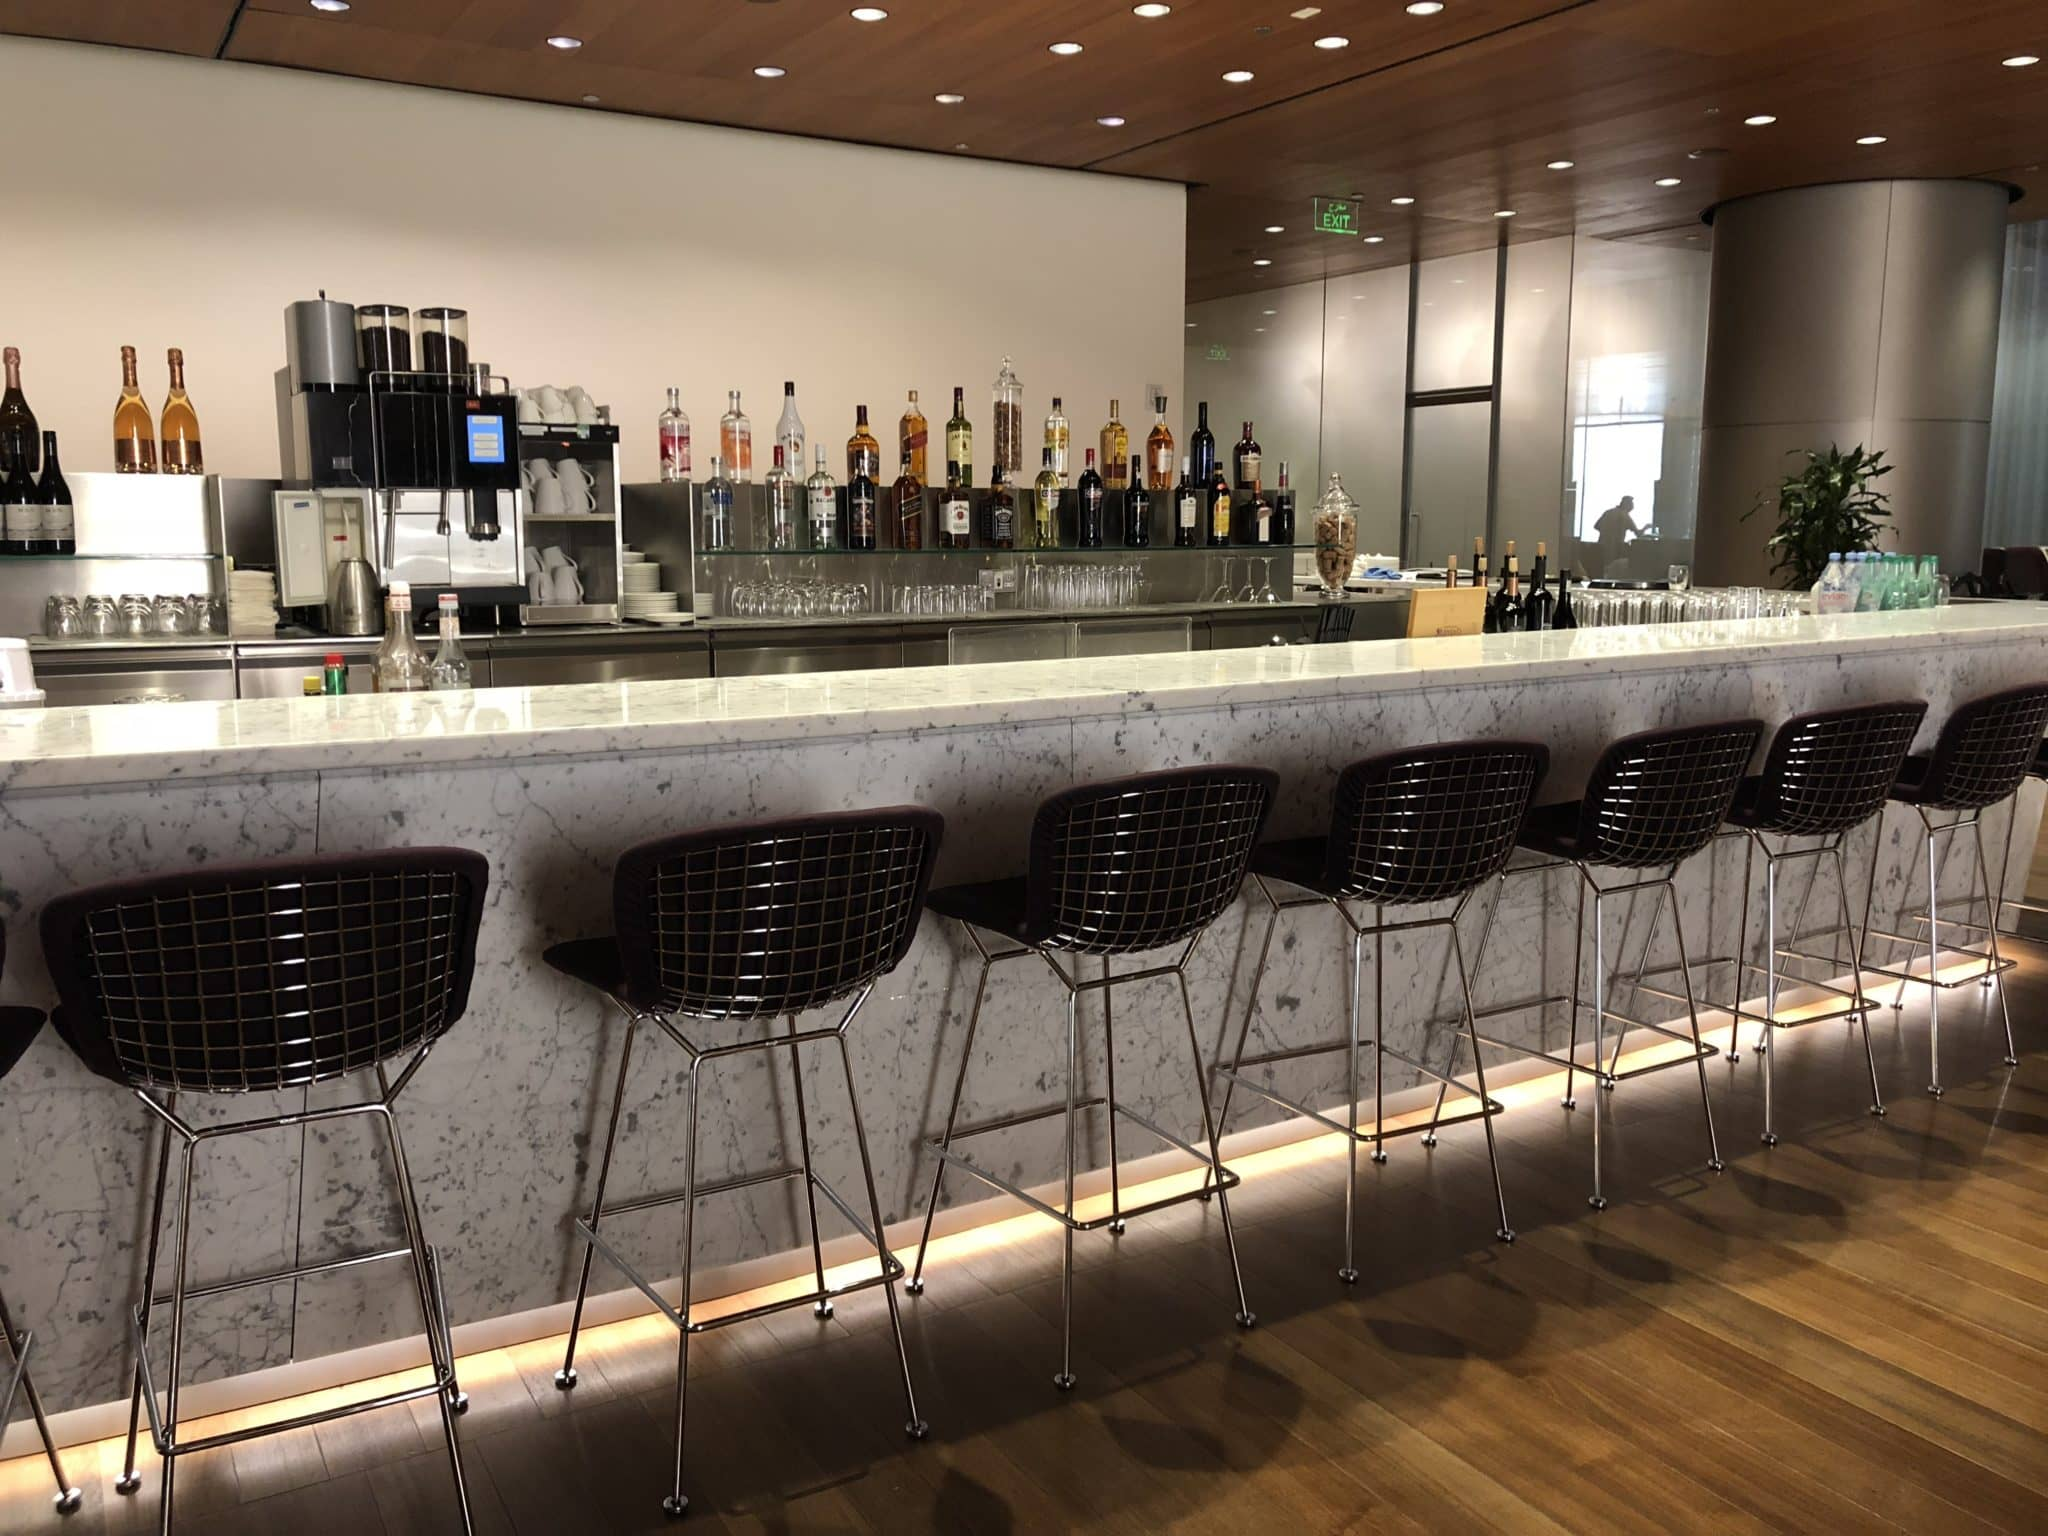 Qatar Airways Al Mourjan Business Class Lounge Bar im Restaurant